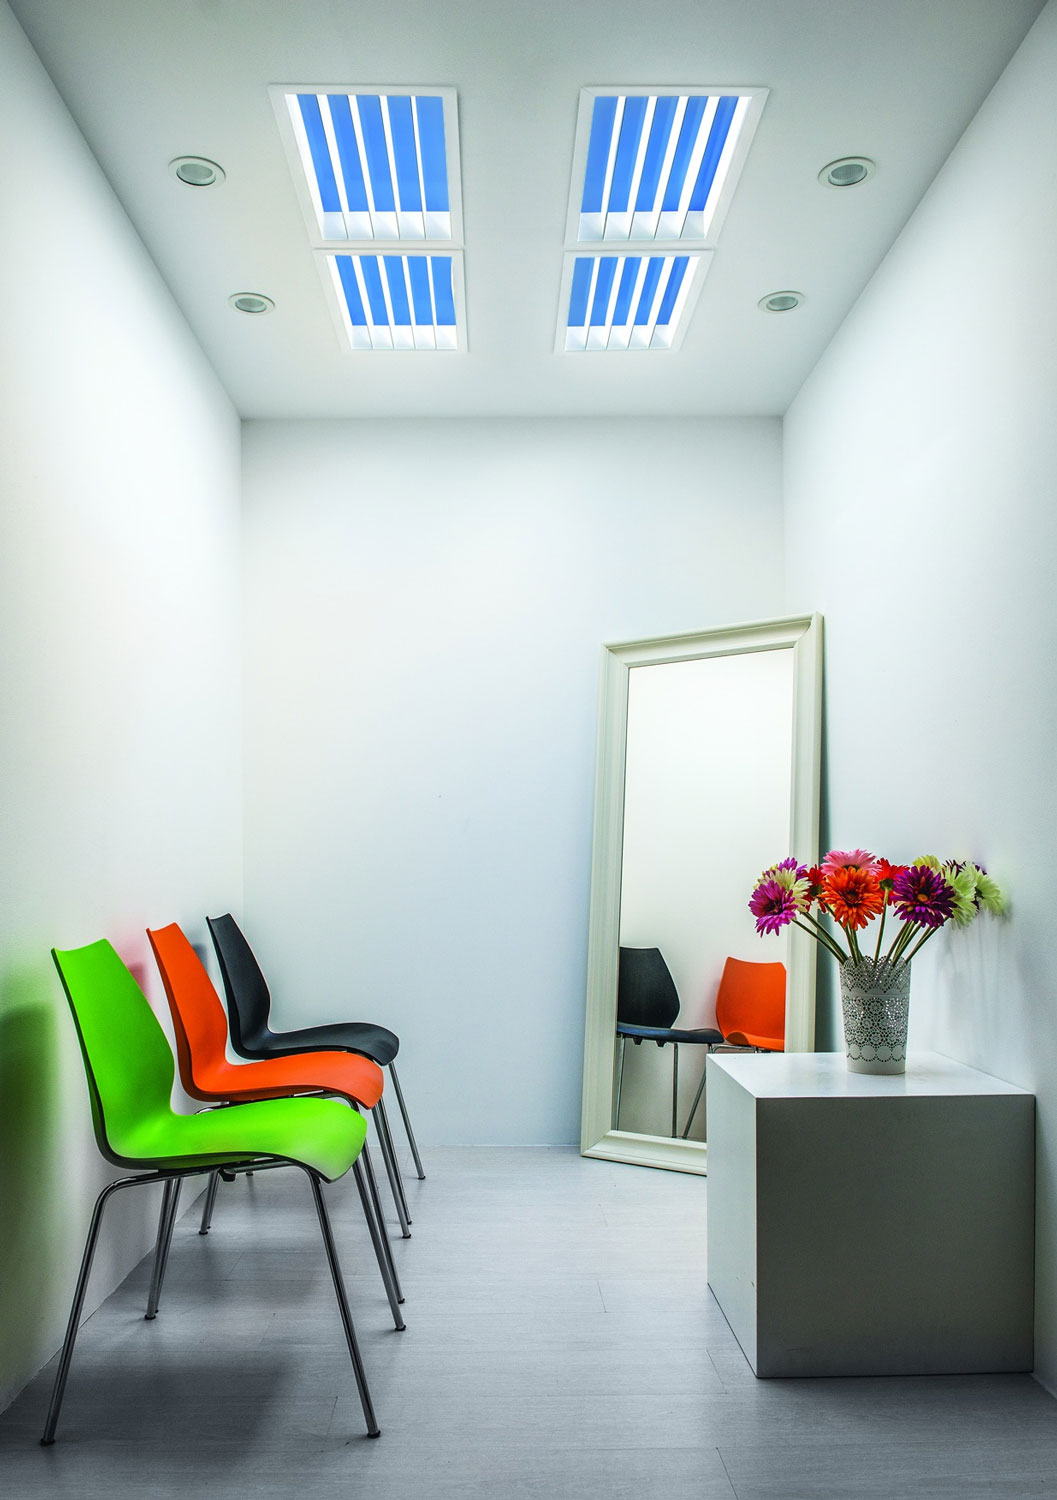 St Tivano Linear Louver Artificial Skylight By Coelux St